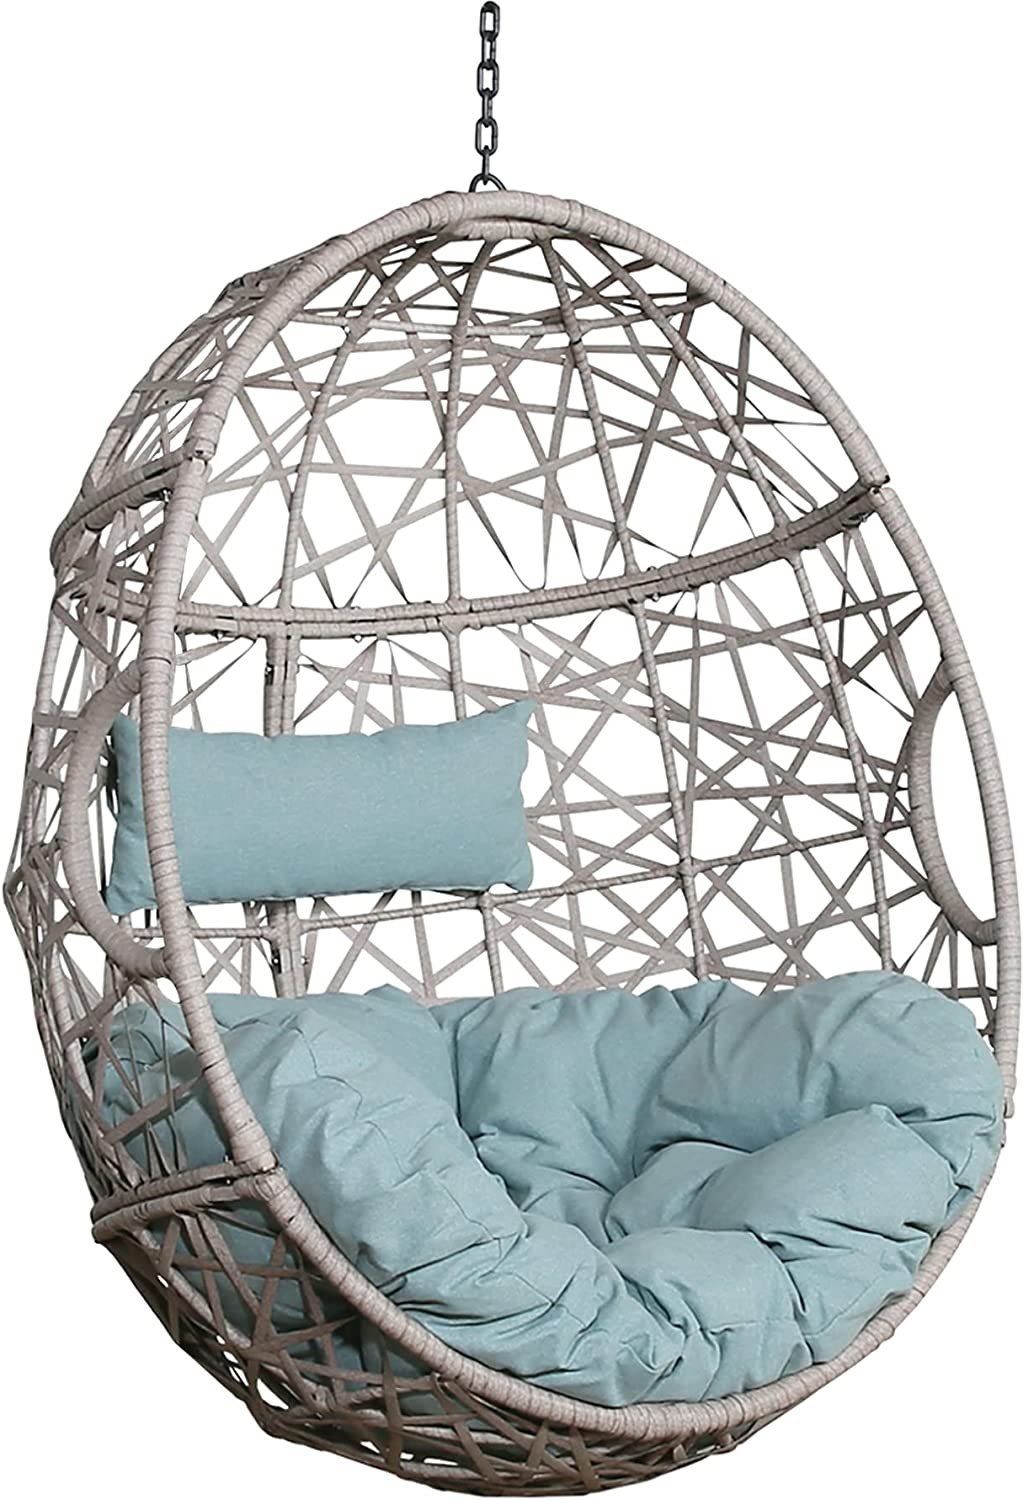 Patio Hammock Basket Fashionable Chair Outdoor Egg Hanging Porch Fees free Swing